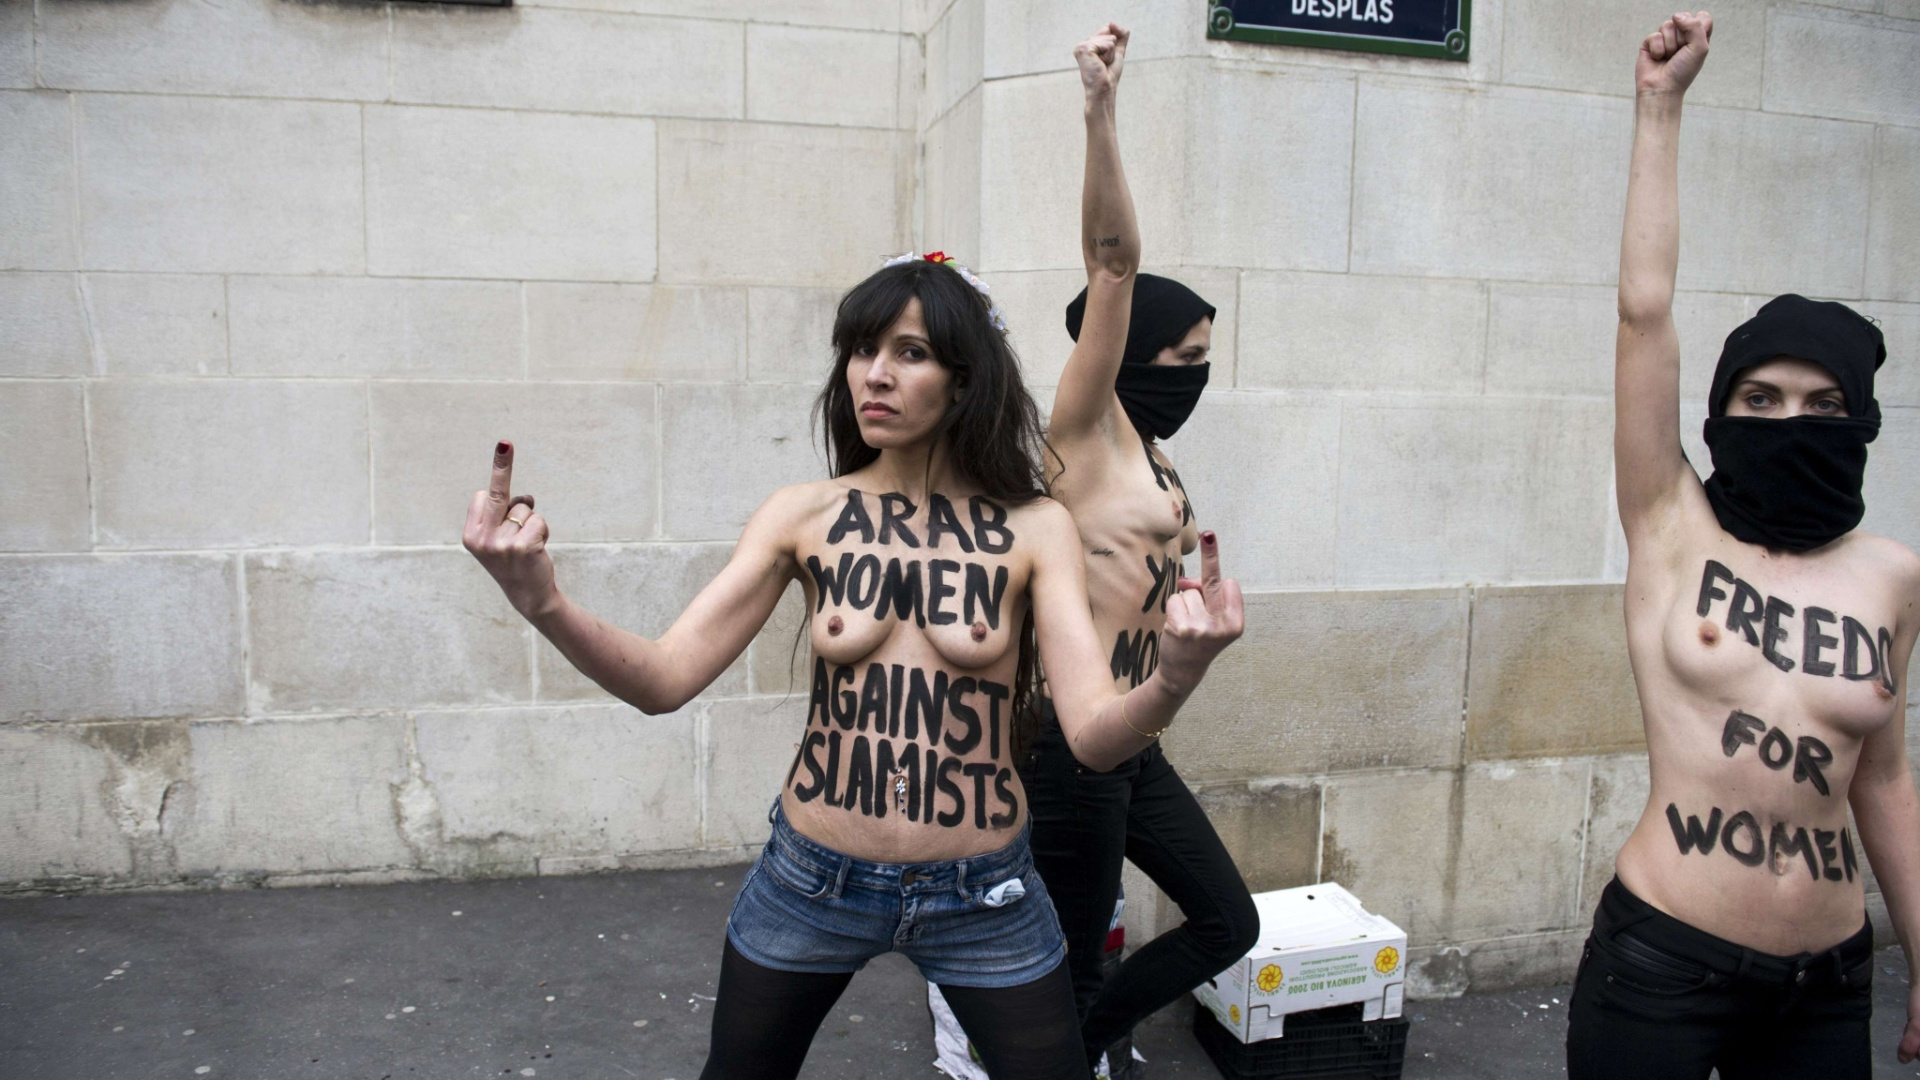 3.abr.2013 - Ativistas do Femen, grupo de origem ucraniana famoso por realizar protestos com o uso de topless, fazem manifestao em frente a mesquita em Paris nesta quarta-feira (3) 	